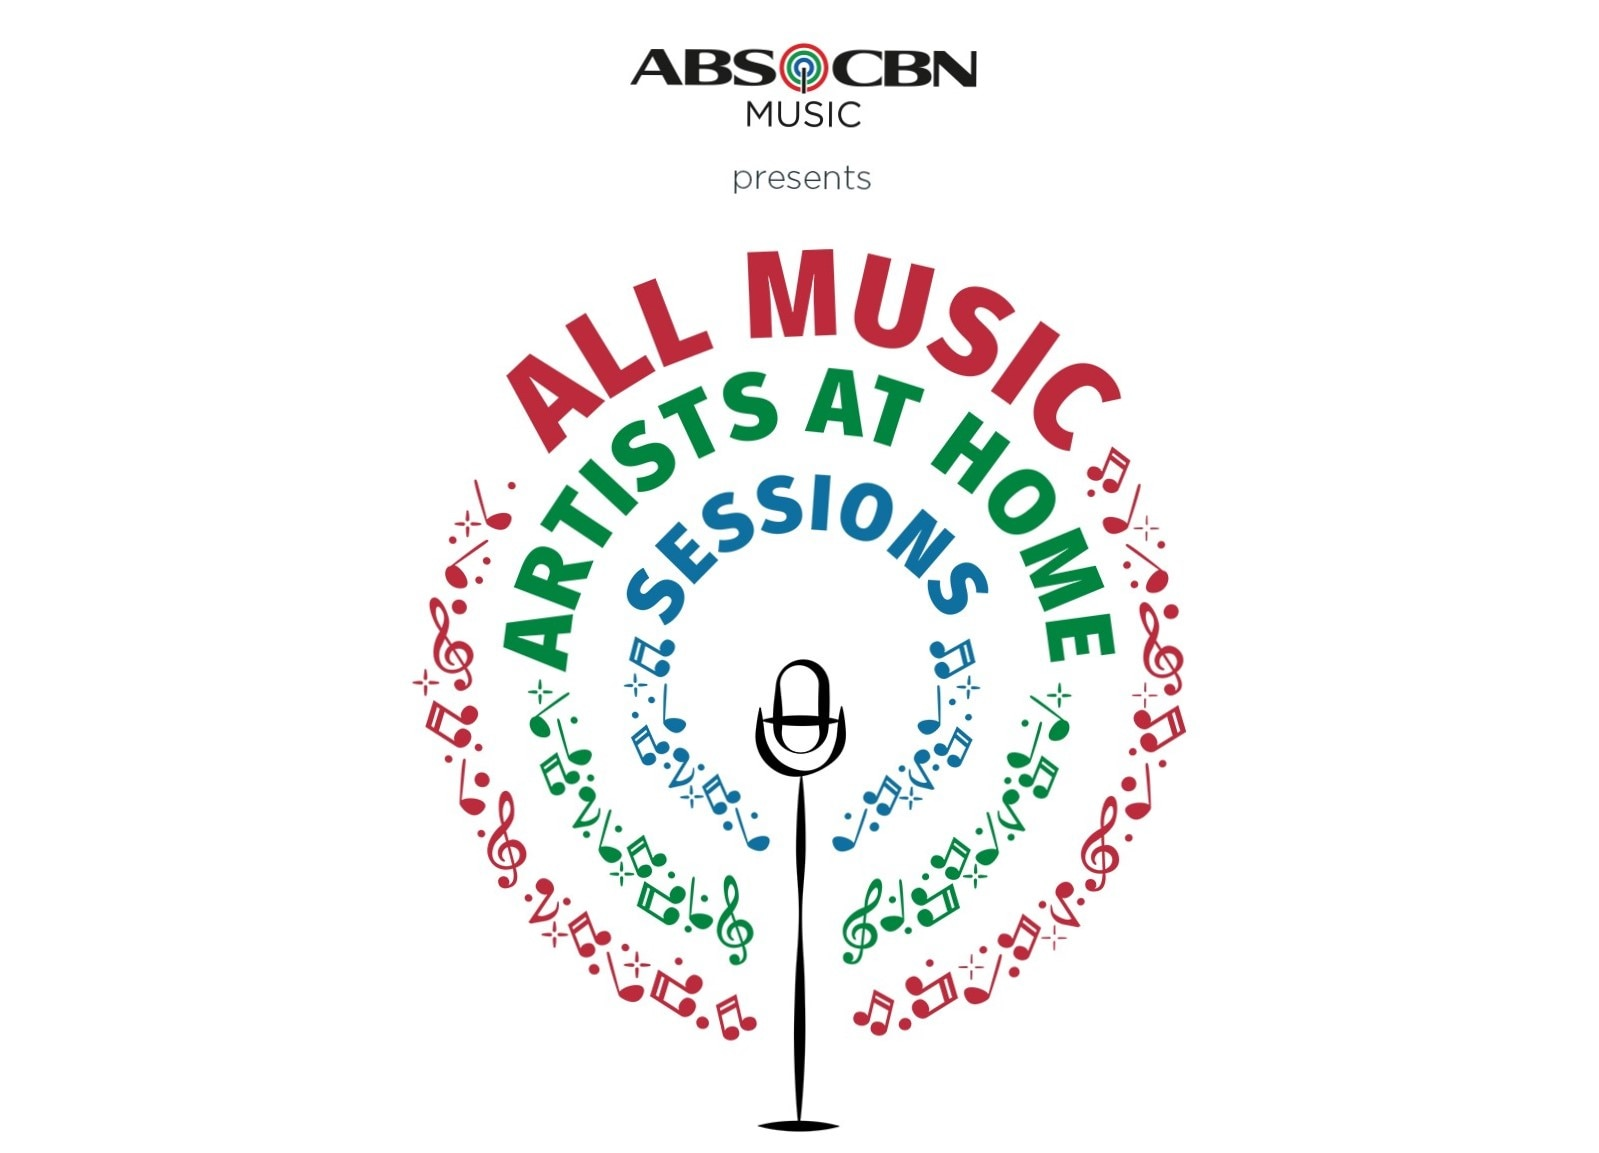 """ABS-CBN stages digital concert series in """"All Music: Artists at Home Sessions"""""""